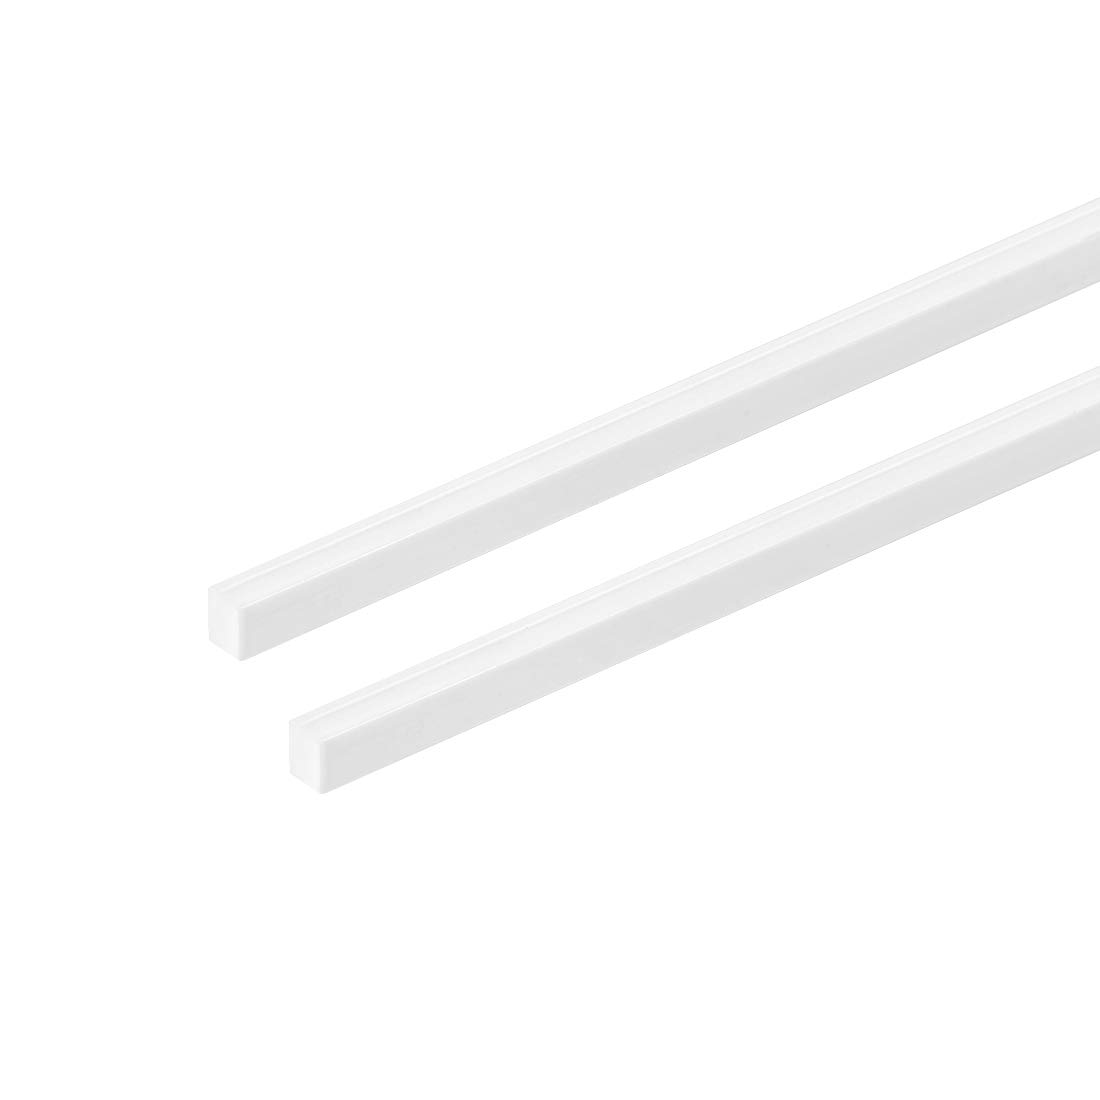 uxcell ABS Plastic Square Bars Rod 4mm/×4mm/×20 inch ABS Plastic Square Bar Rod for Architectural Model Making DIY White